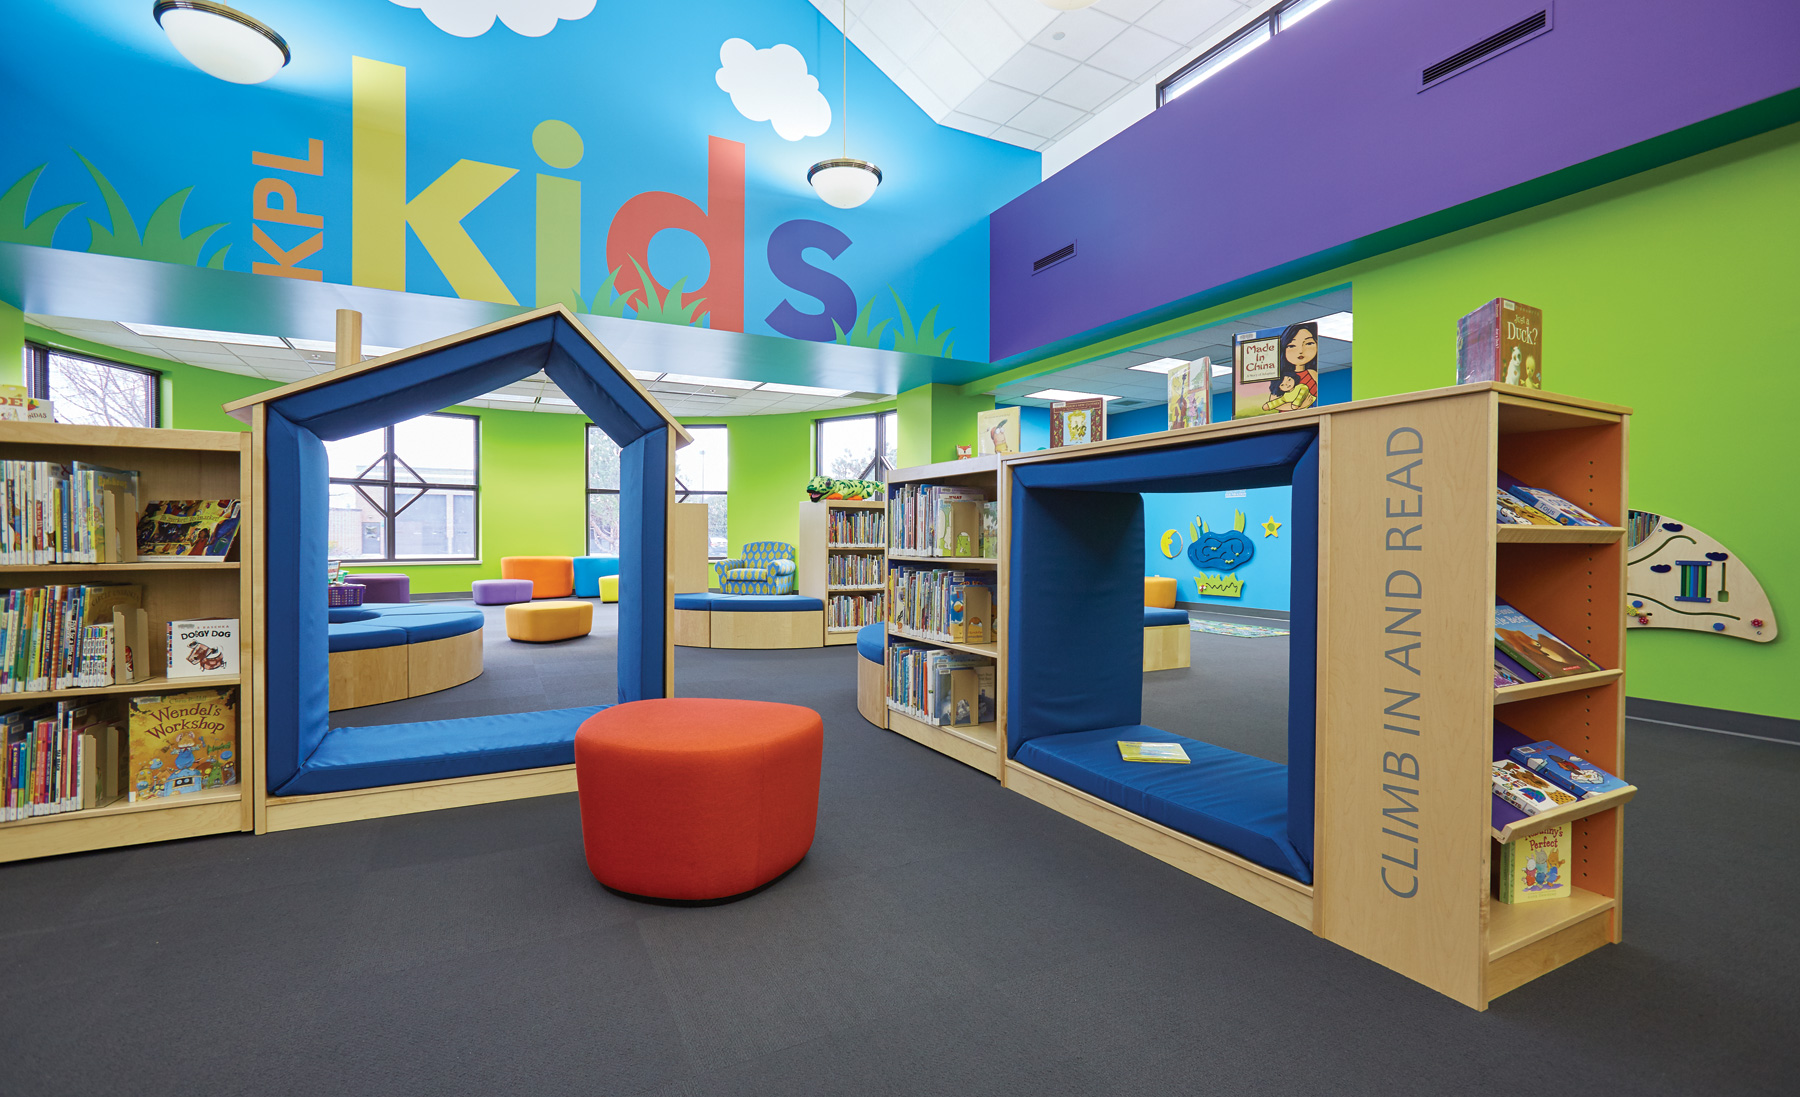 Kenosha public library idea gallery for Interior design and decorating schools in lagos